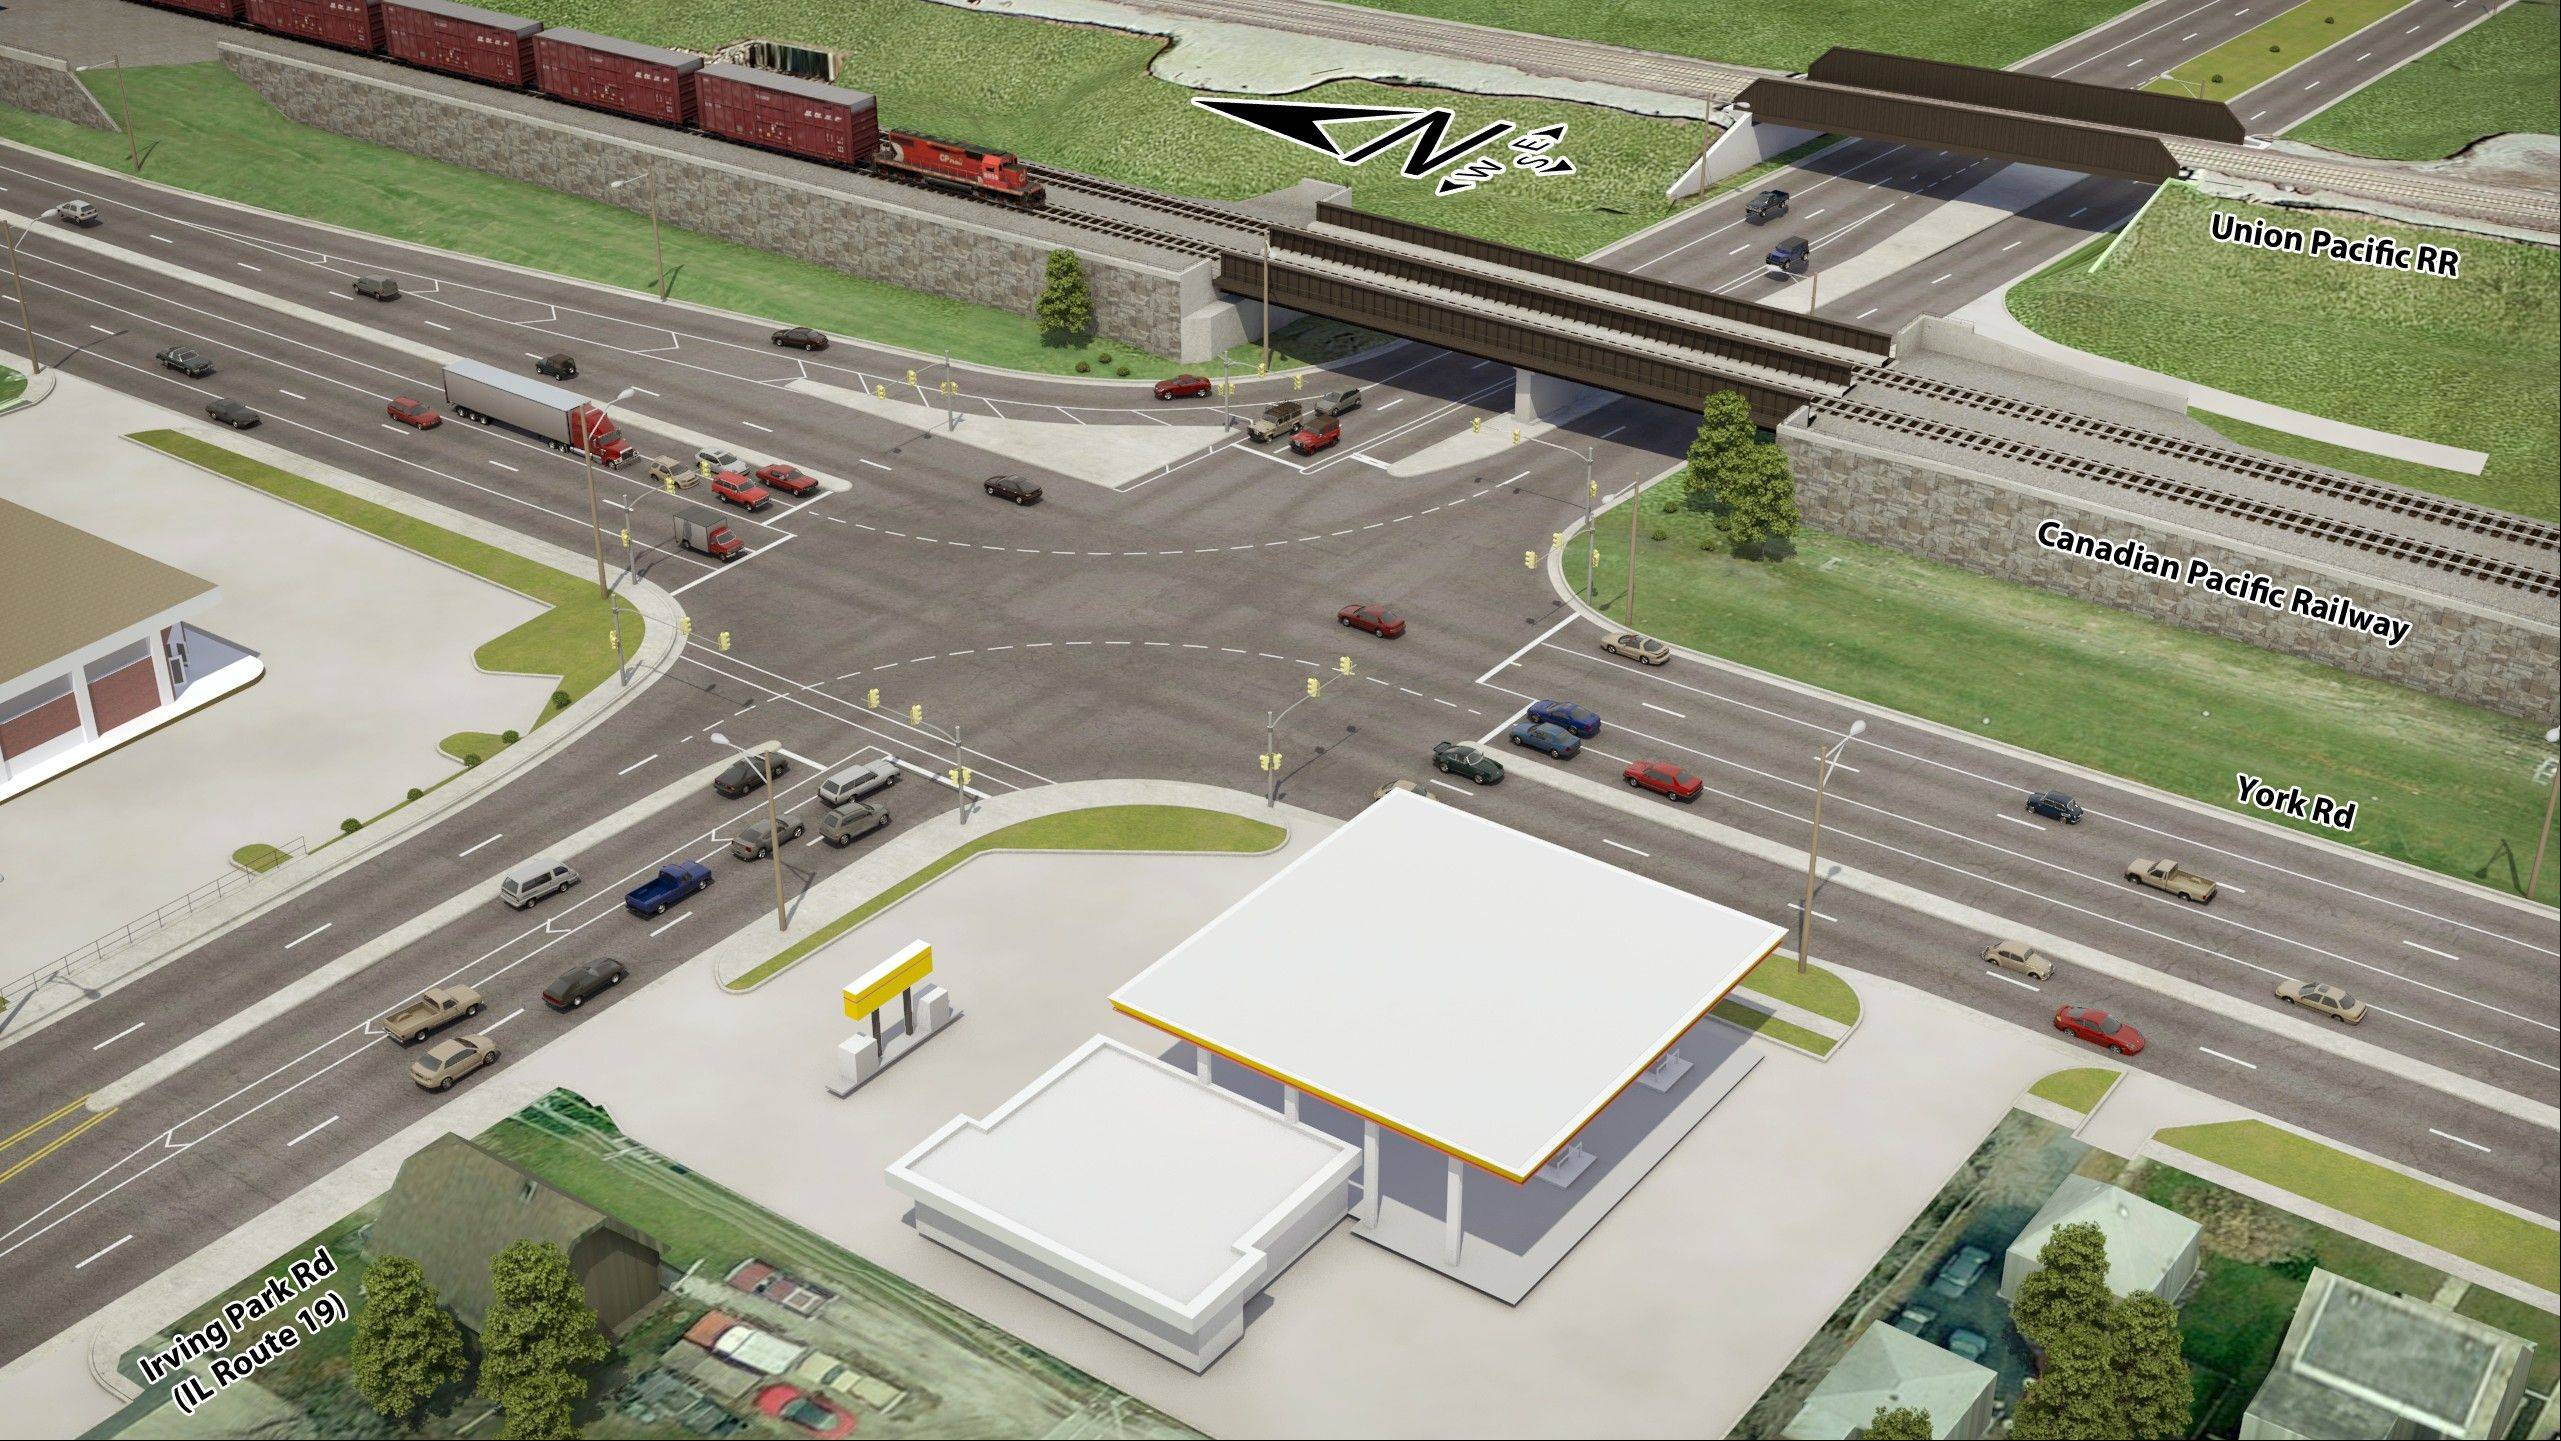 An illustration of the reworked intersection of York and Irving Park roads in Bensenville.